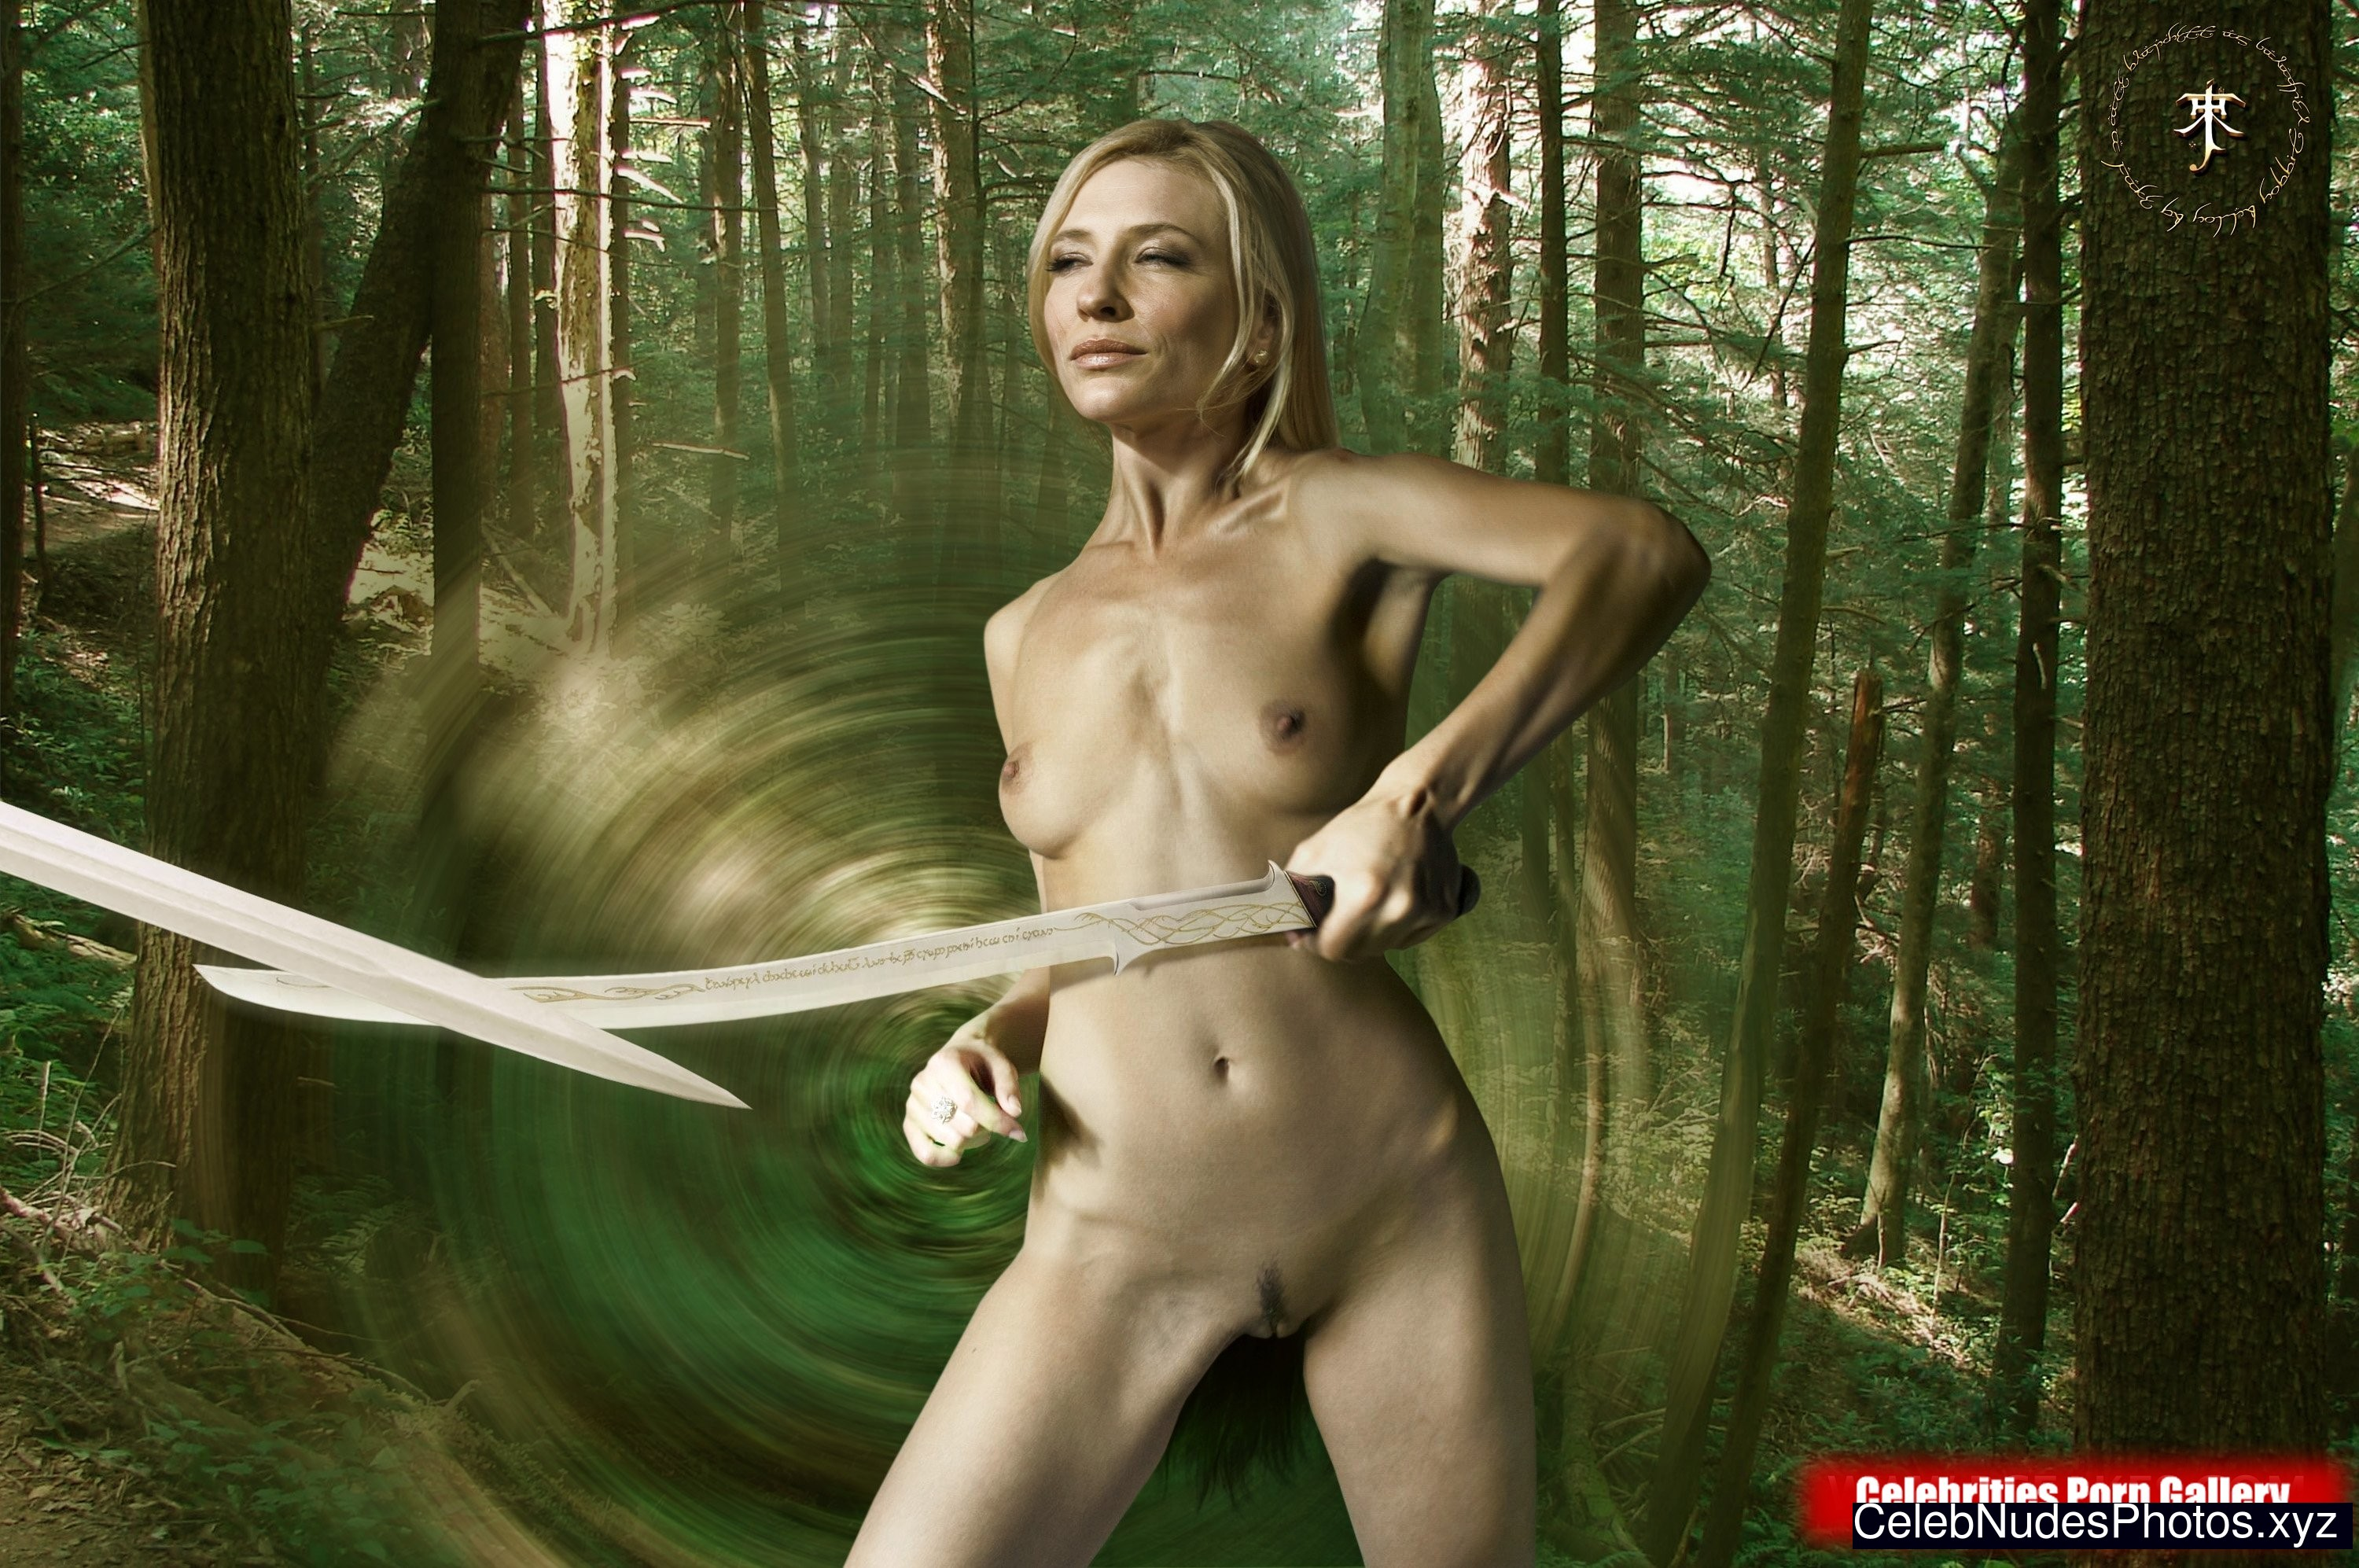 cate blanchett nude pictures